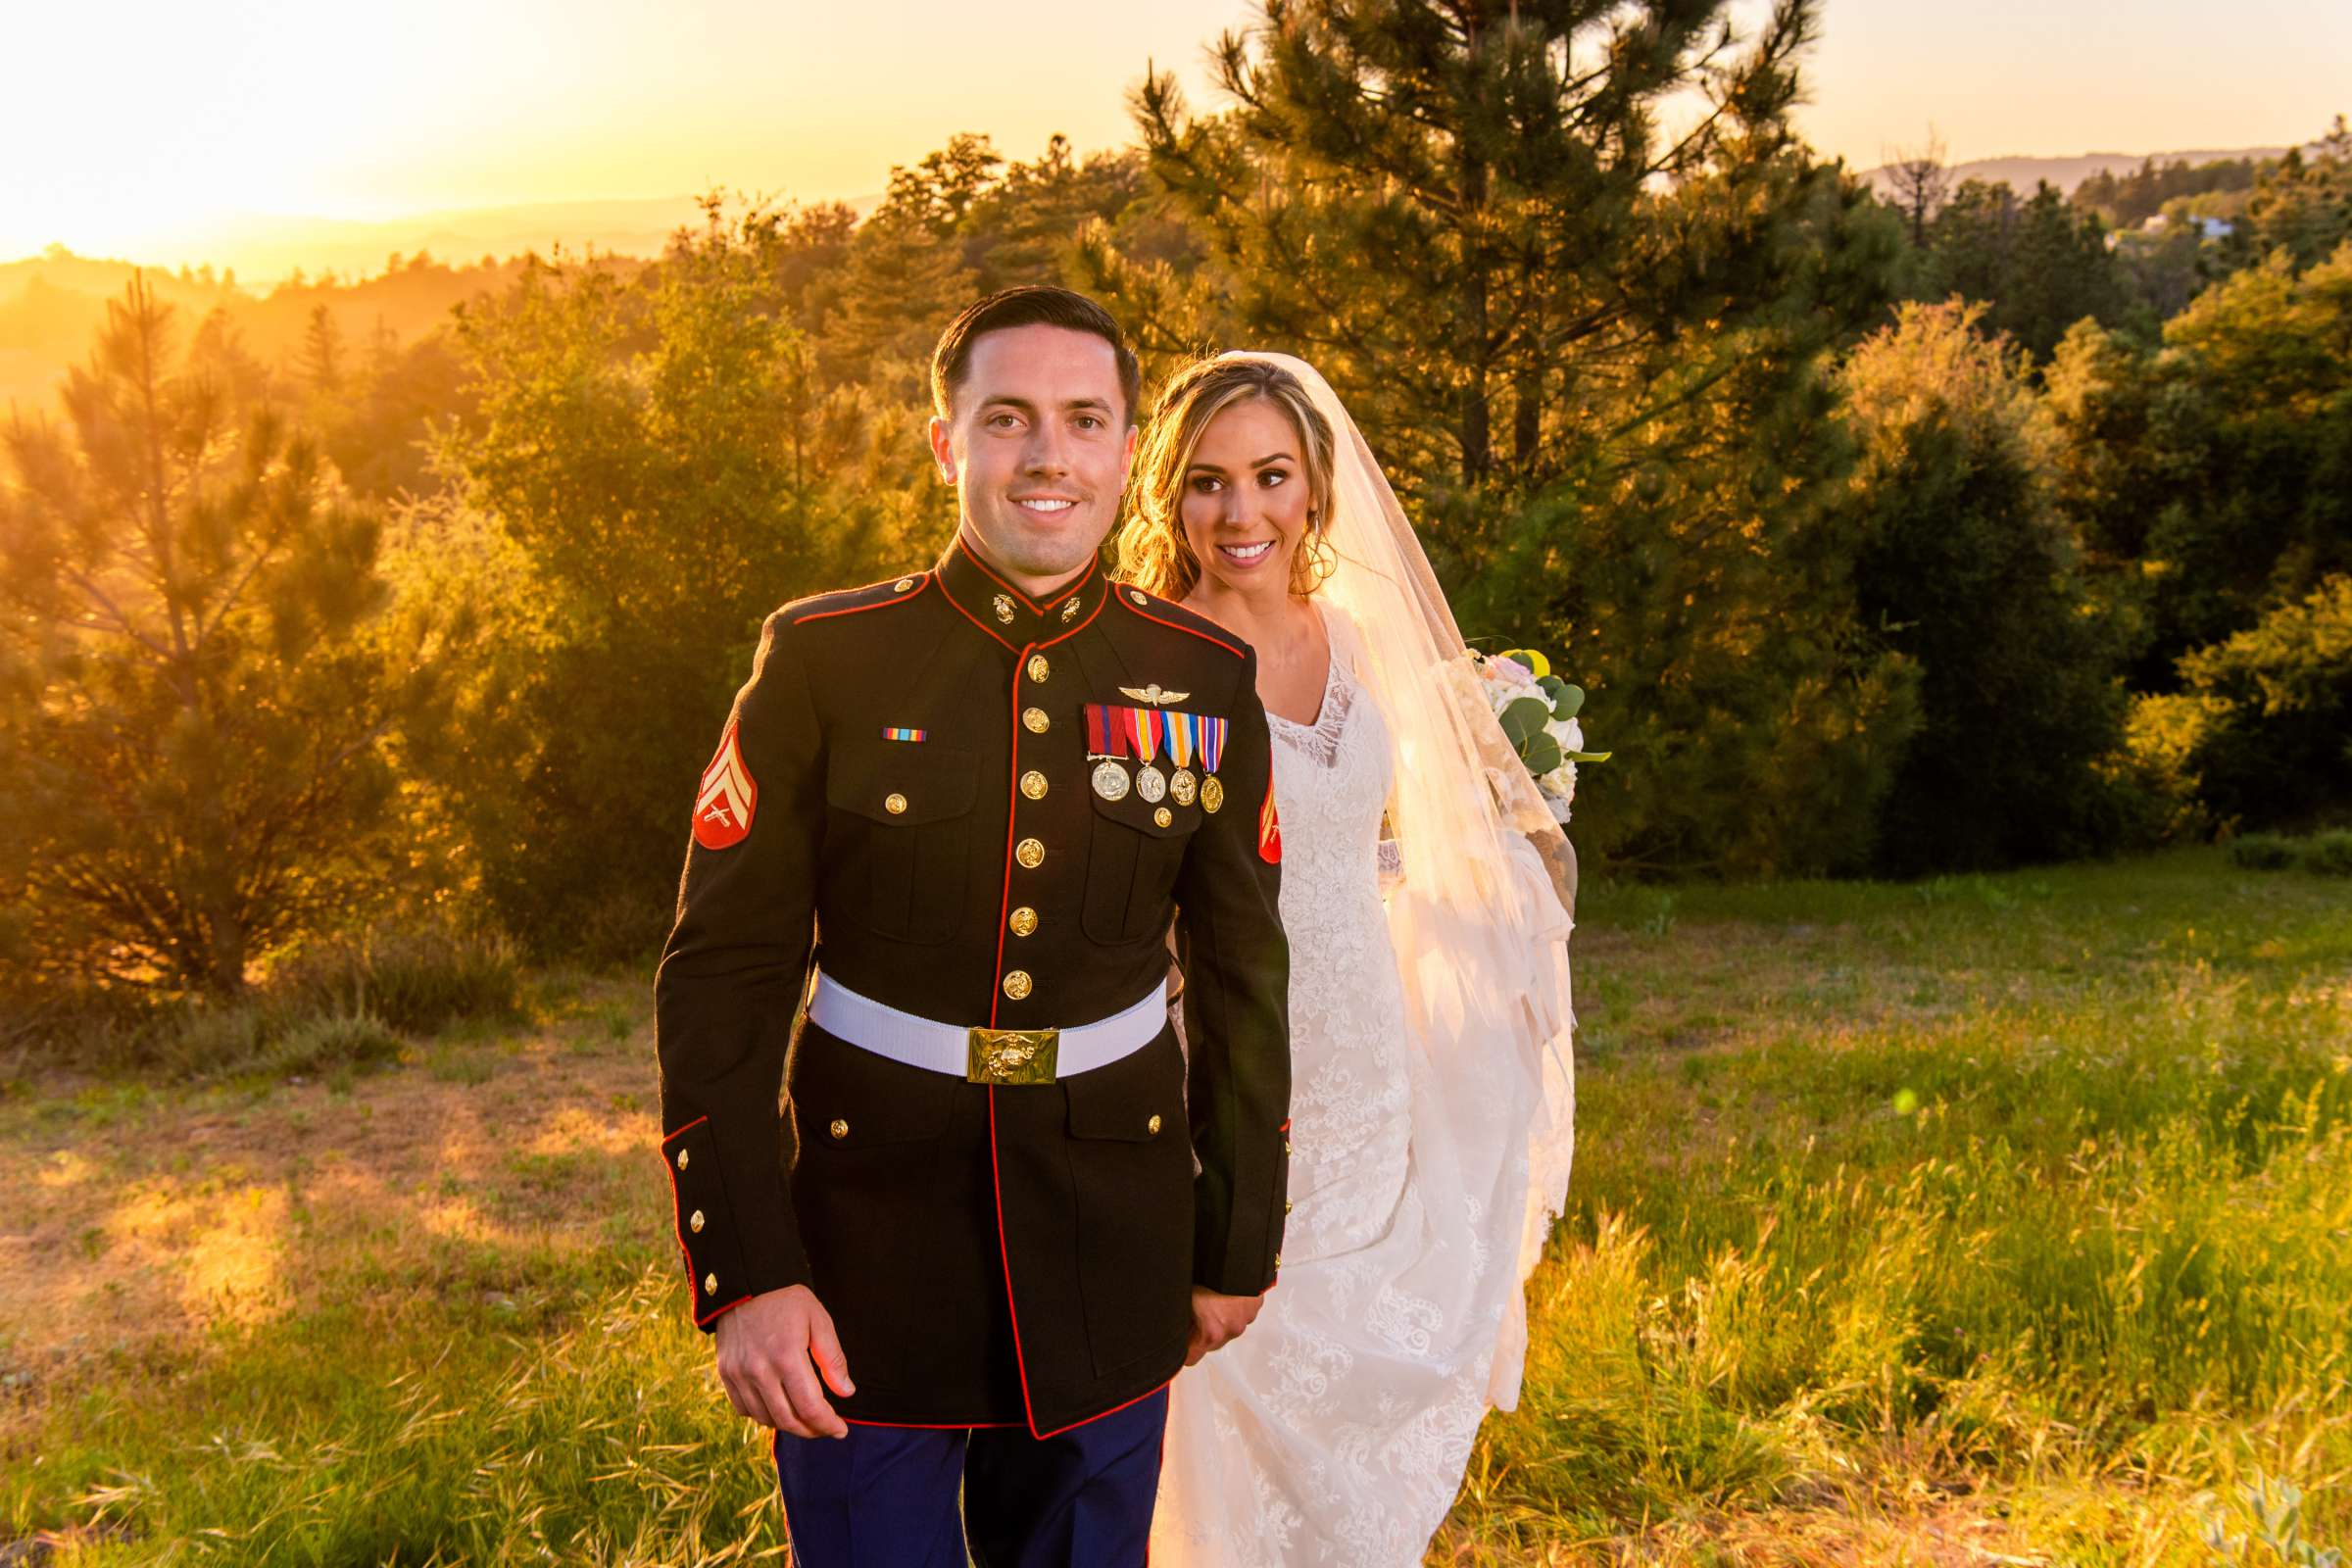 Sacred Mountain Retreat Wedding, Chelsea and Ryan Wedding Photo #126 by True Photography